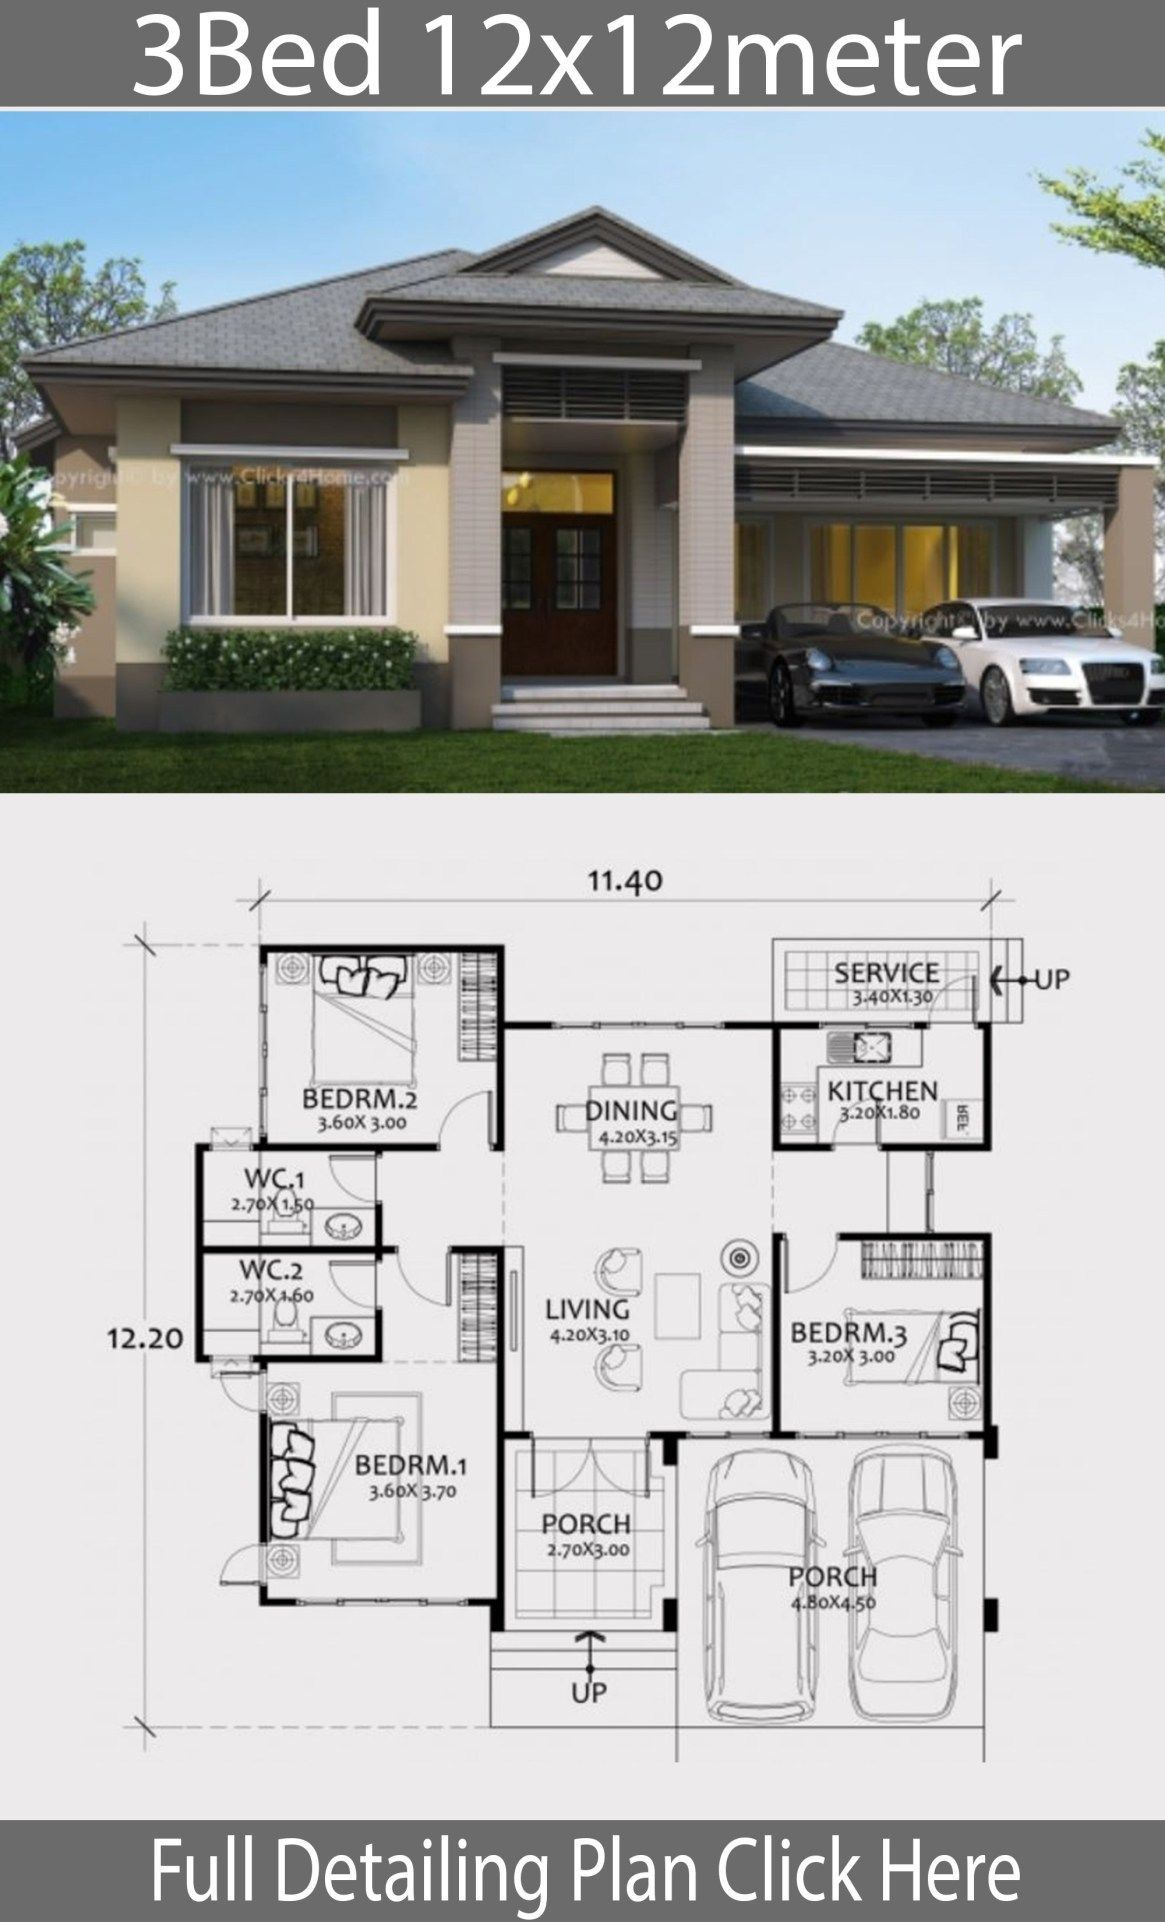 Fresh House Design Ideas Floor Plans Layout Home Design House Construction Plan Modern Bungalow House Bungalow Floor Plans